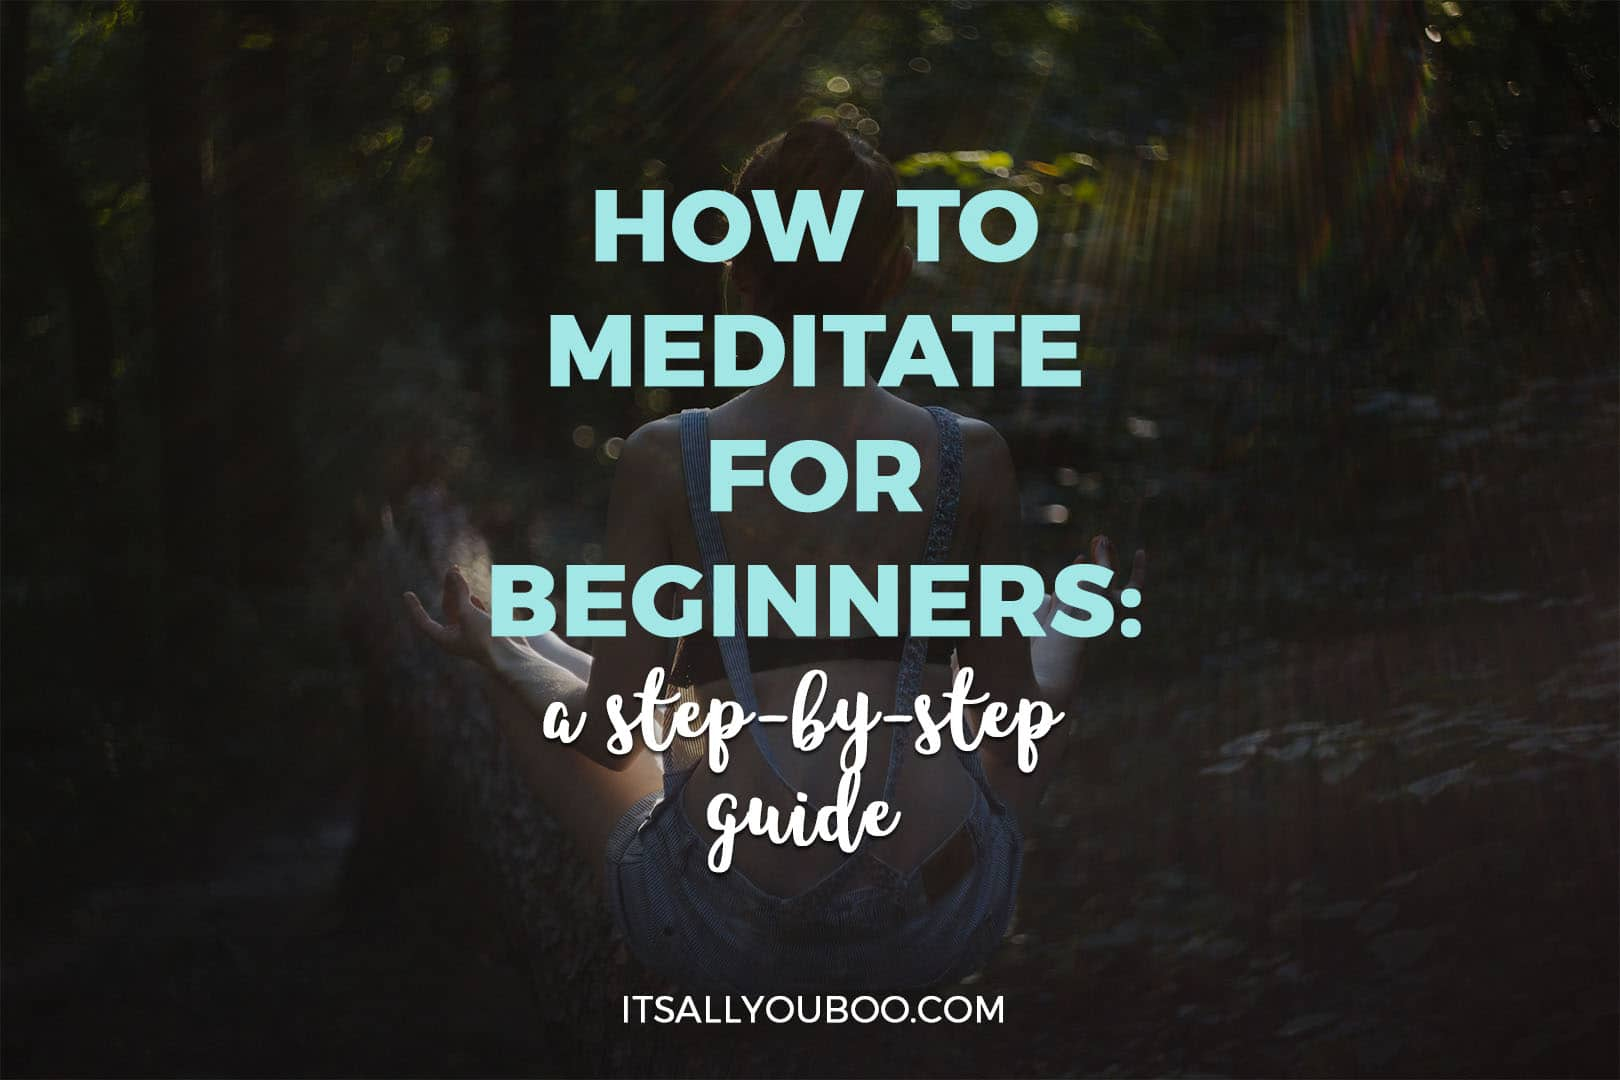 How to Meditate for Beginners: A Step-by-Step Guide